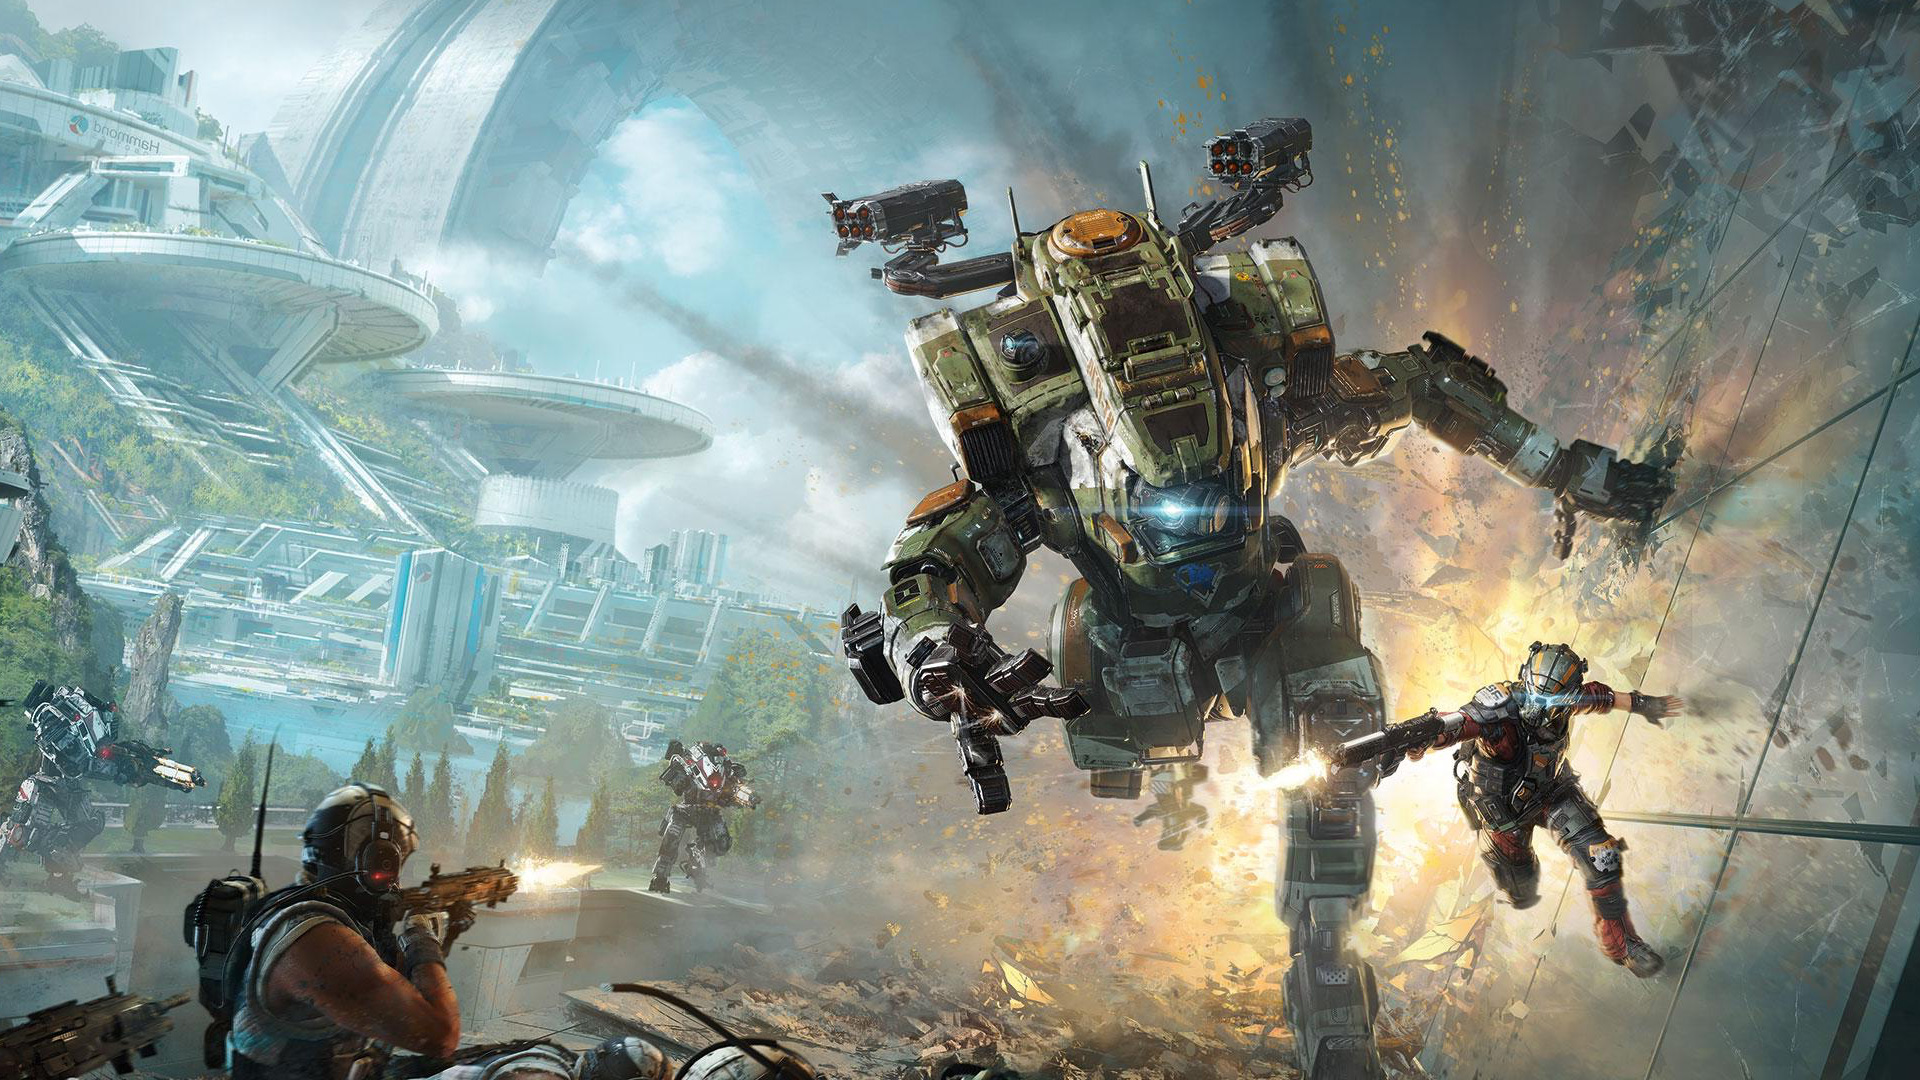 titanfall 2 wallpaper  Titanfall 2 – PS Wallpapers